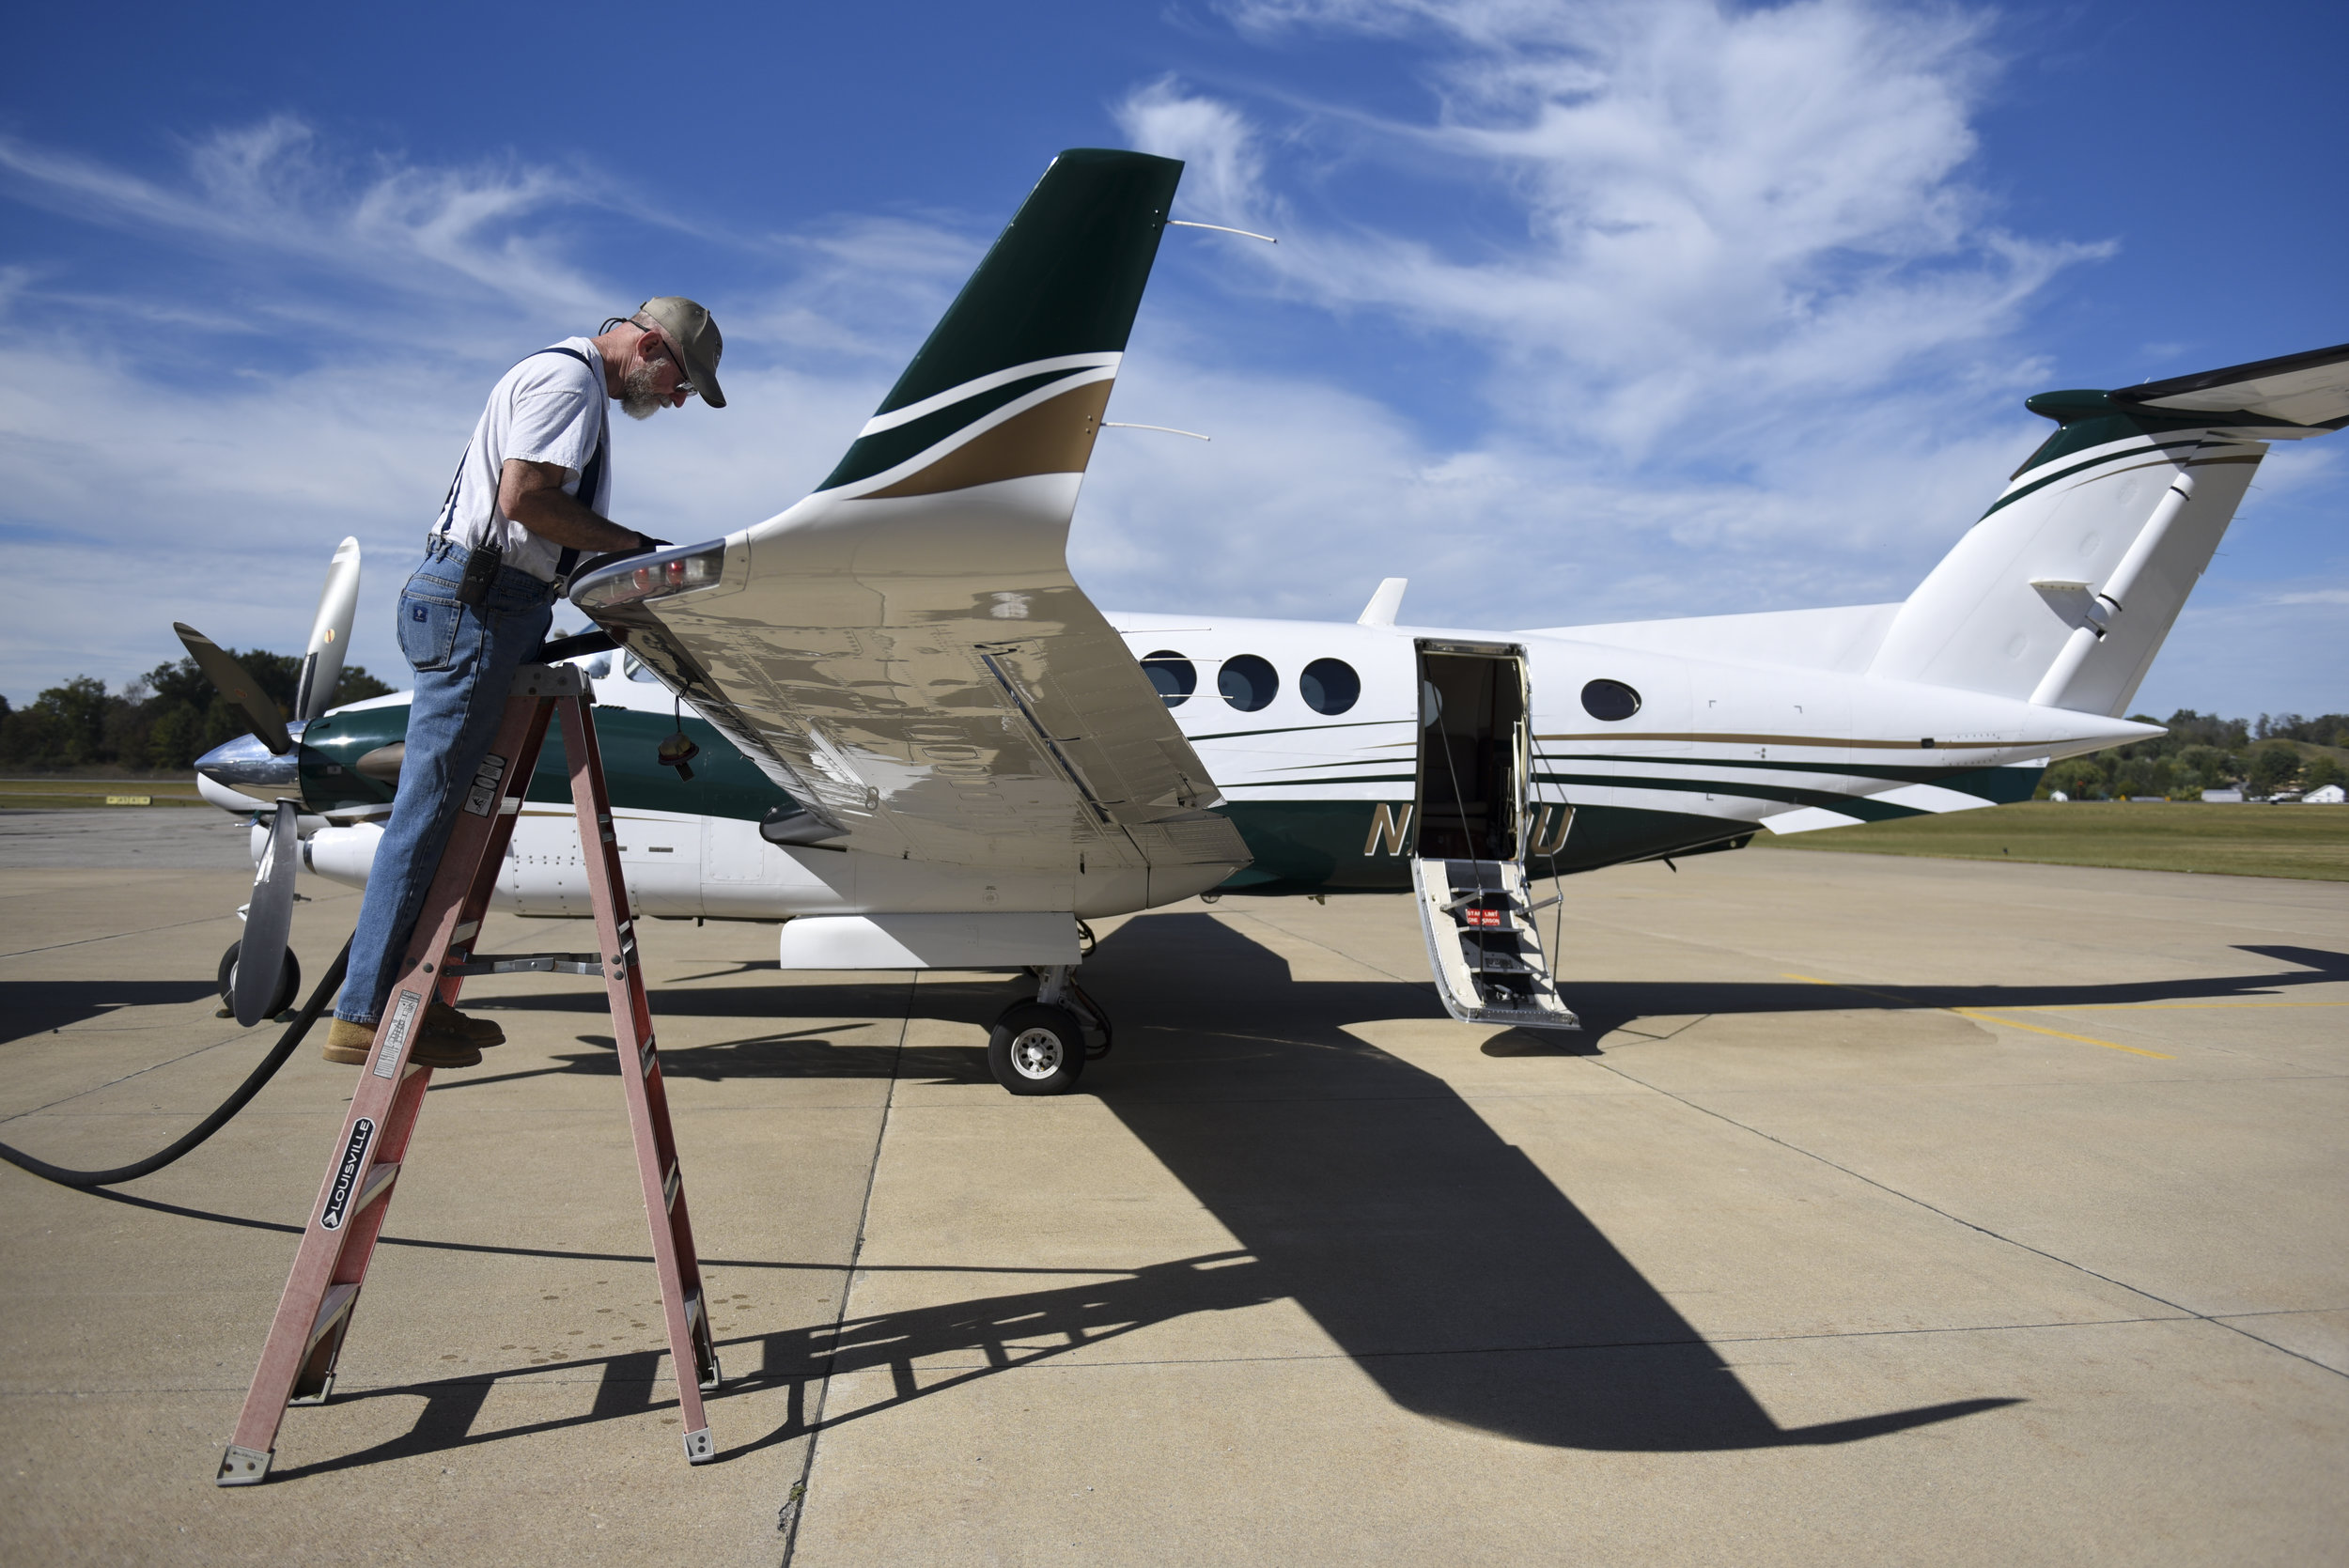 Bob Black fills the tank of the Ohio University King Air with fuel in preparation for university's trip to deliver donations to victims of hurricanes in Puerto Rico.